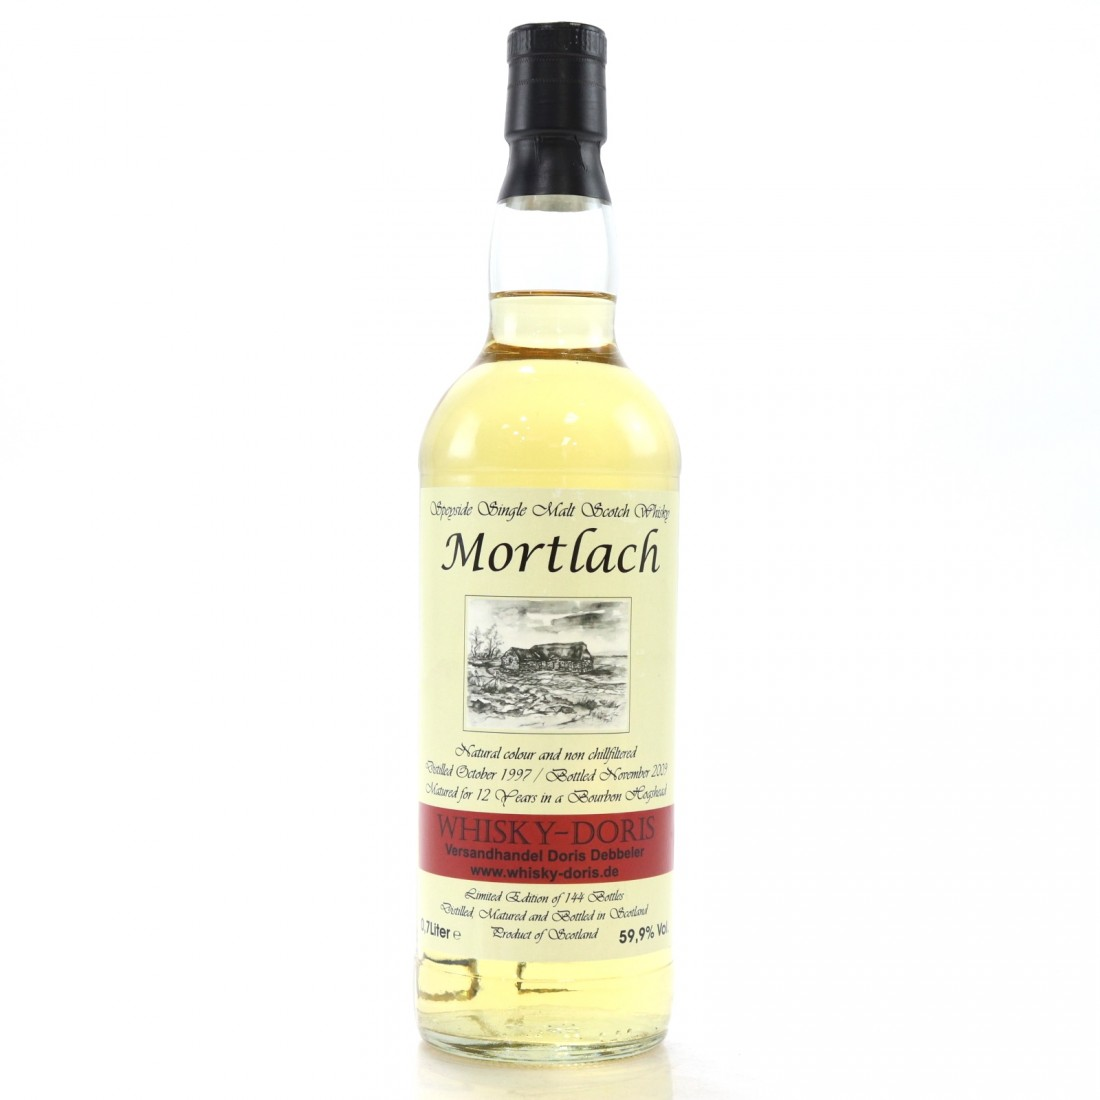 Mortlach 1997 Whisky-Doris 12 Year Old